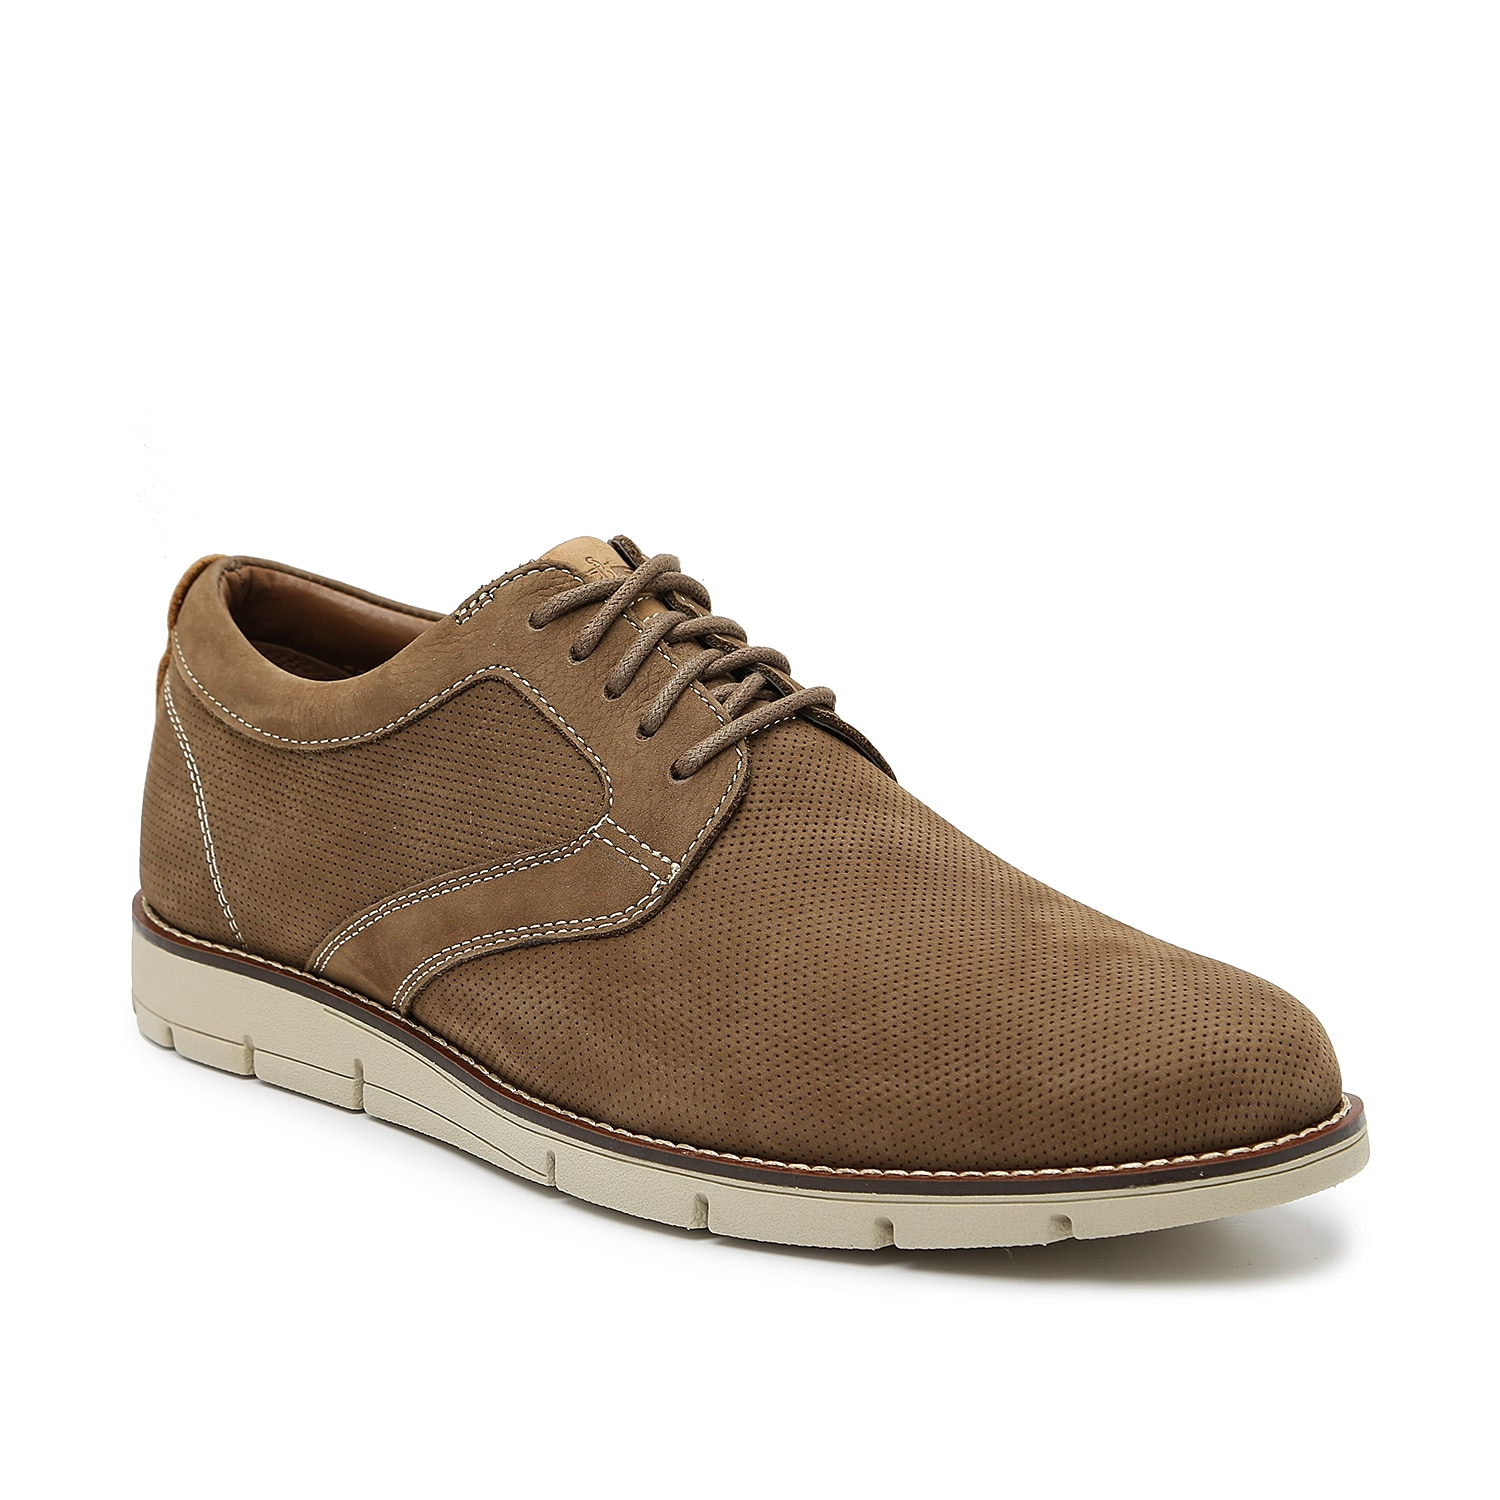 The Nathan oxford from Dockers flaunts a classic design that will pair with any tailored look. A contrasting midsole furthers the handsome appeal of this leather lace-ups that\\\'s covered in micro perforations.